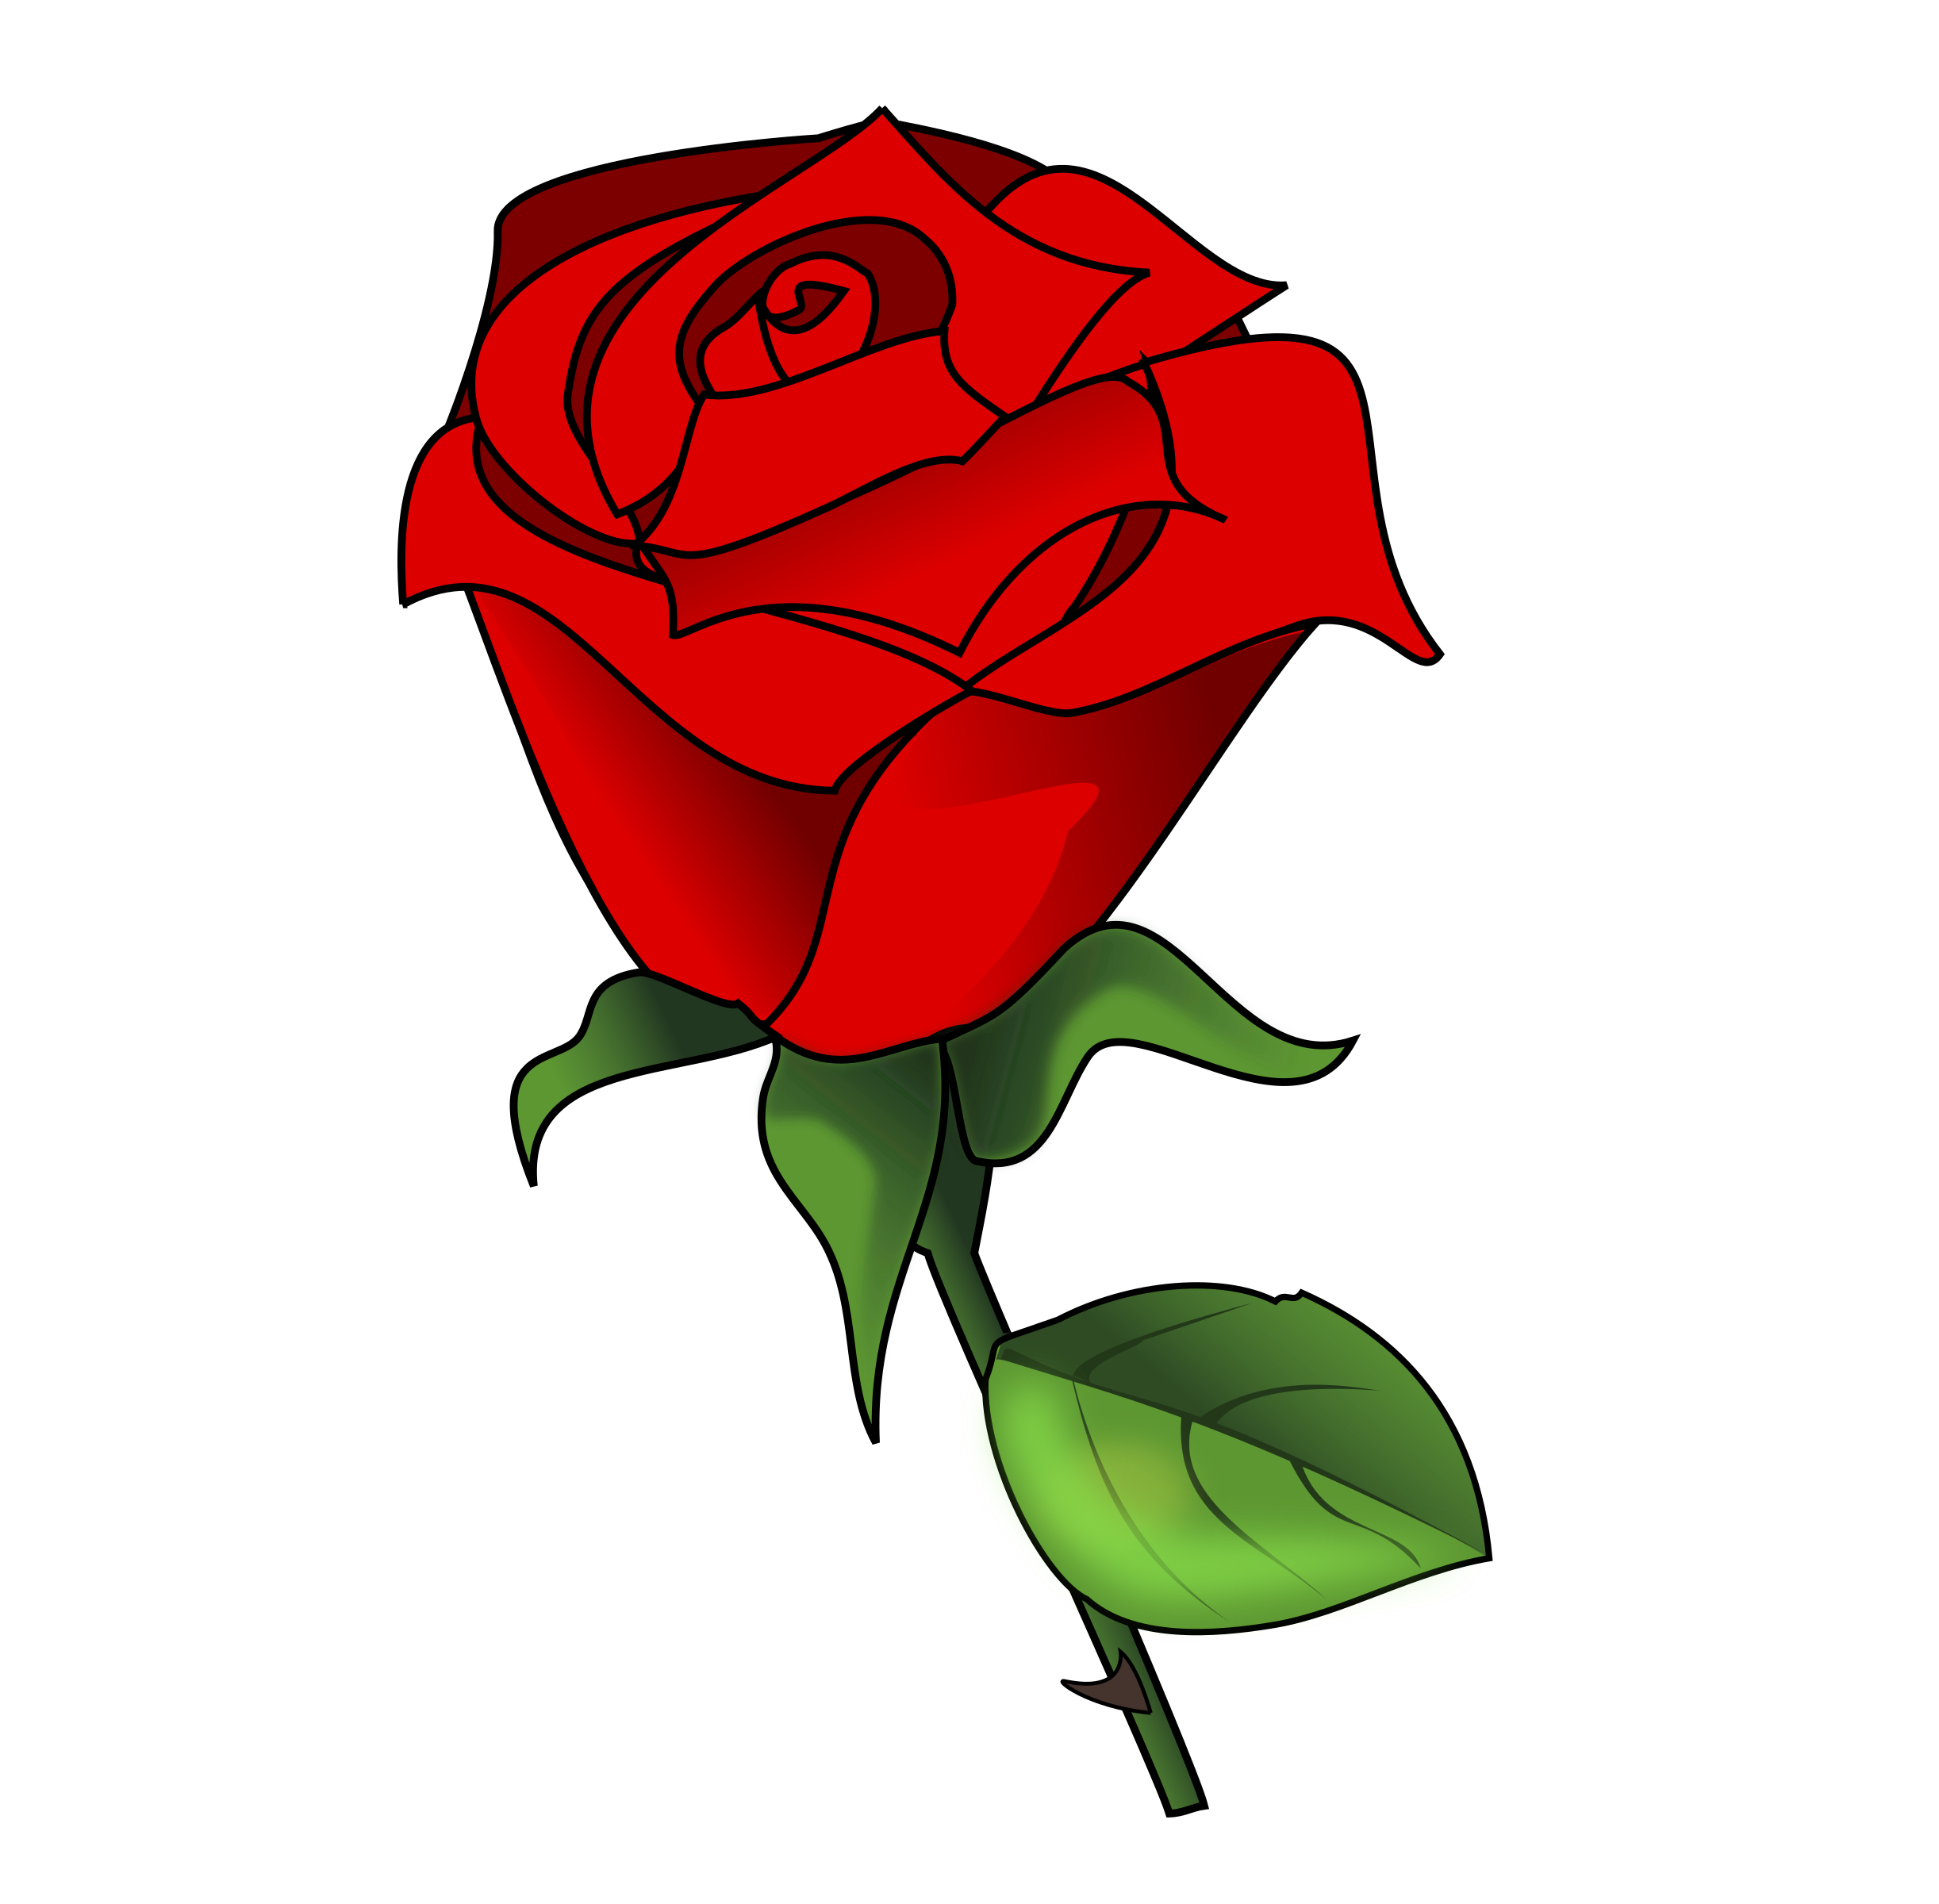 Red Flower clipart romance #6